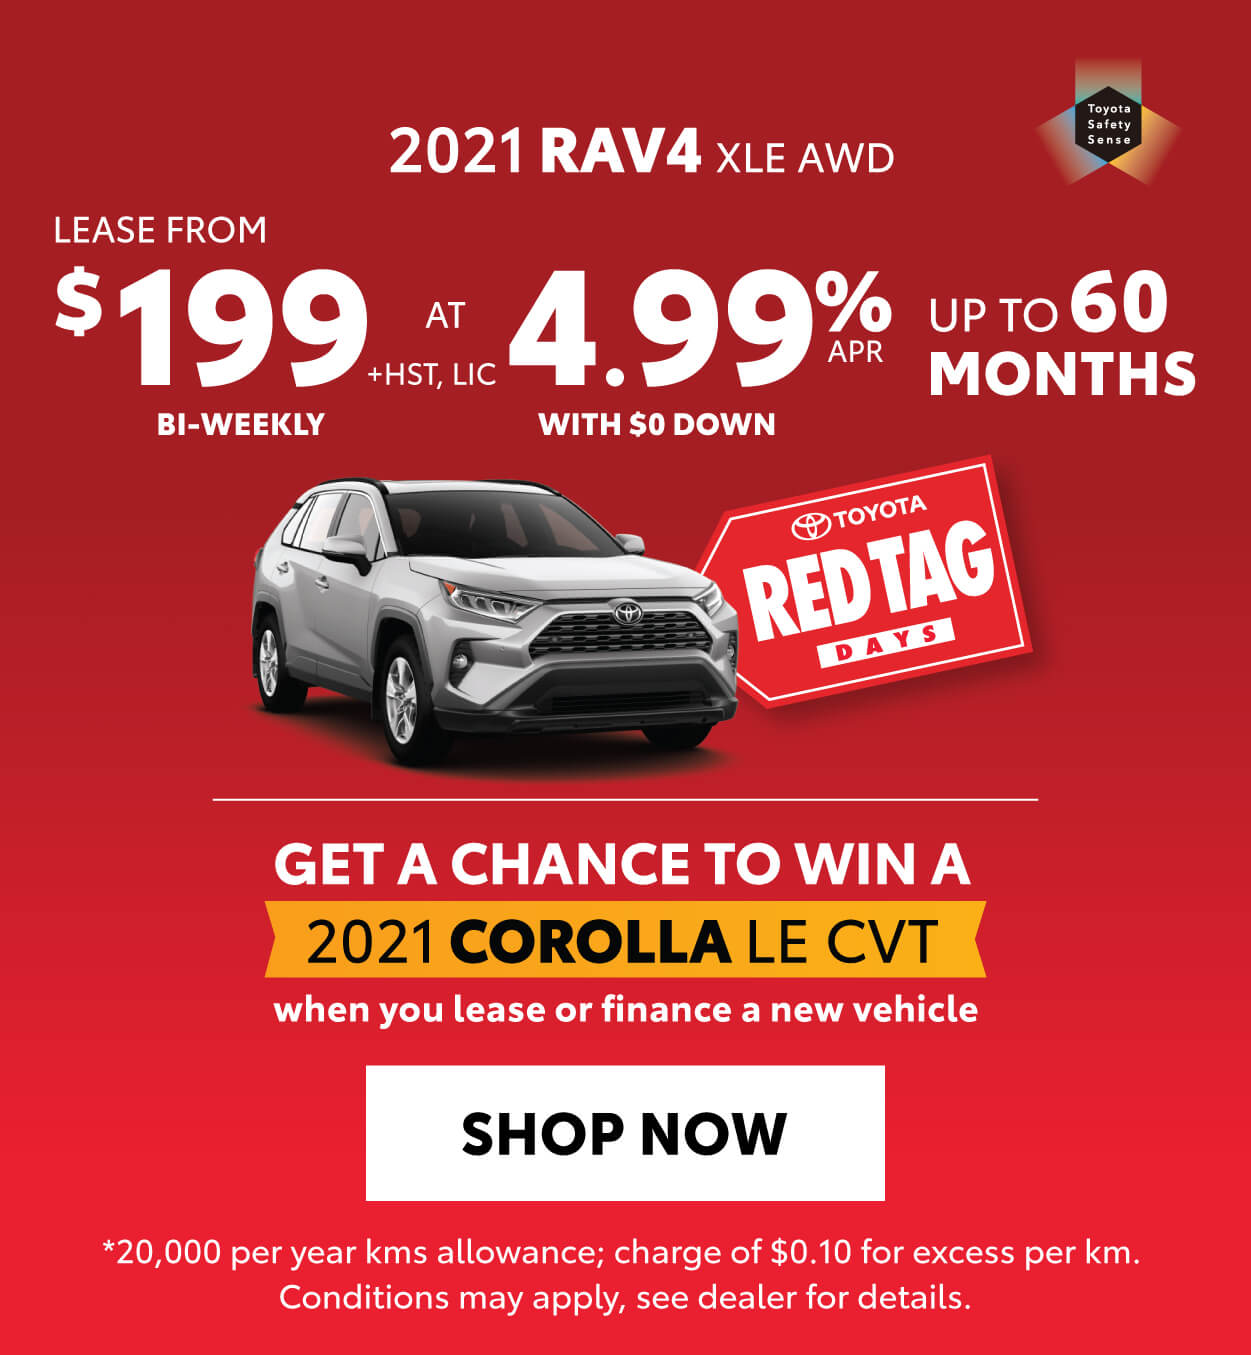 RAV4 Offer Georgetwon Toyota